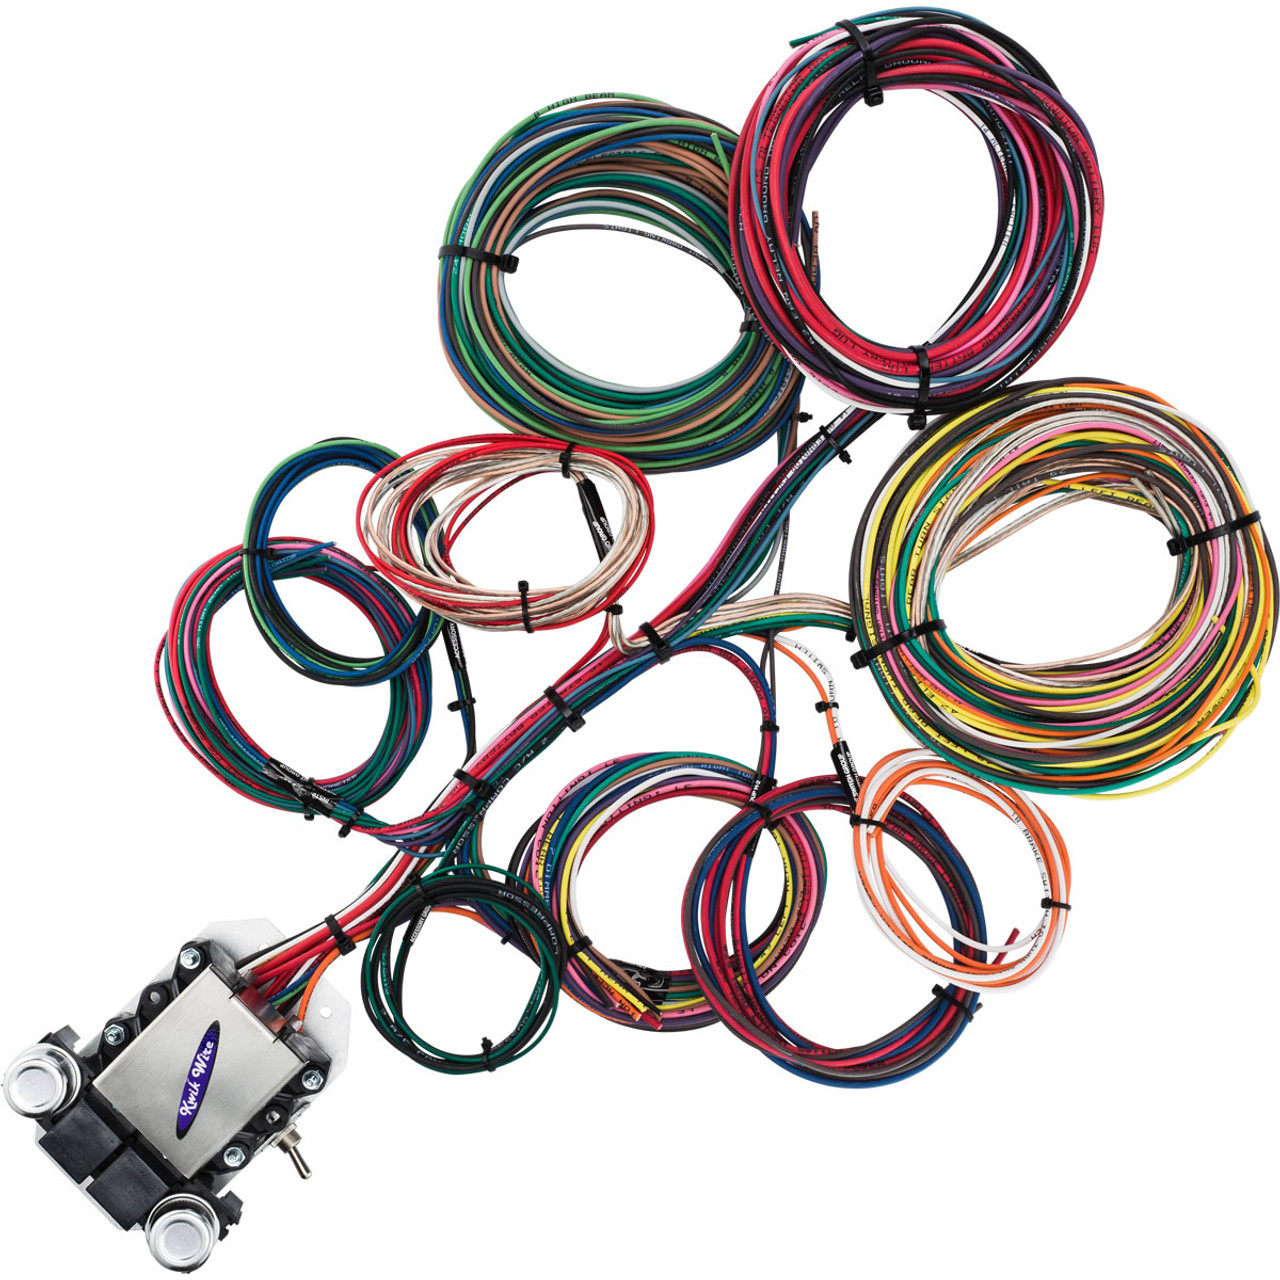 14 Circuit Wire Harness Electrify Your Ride Porsche